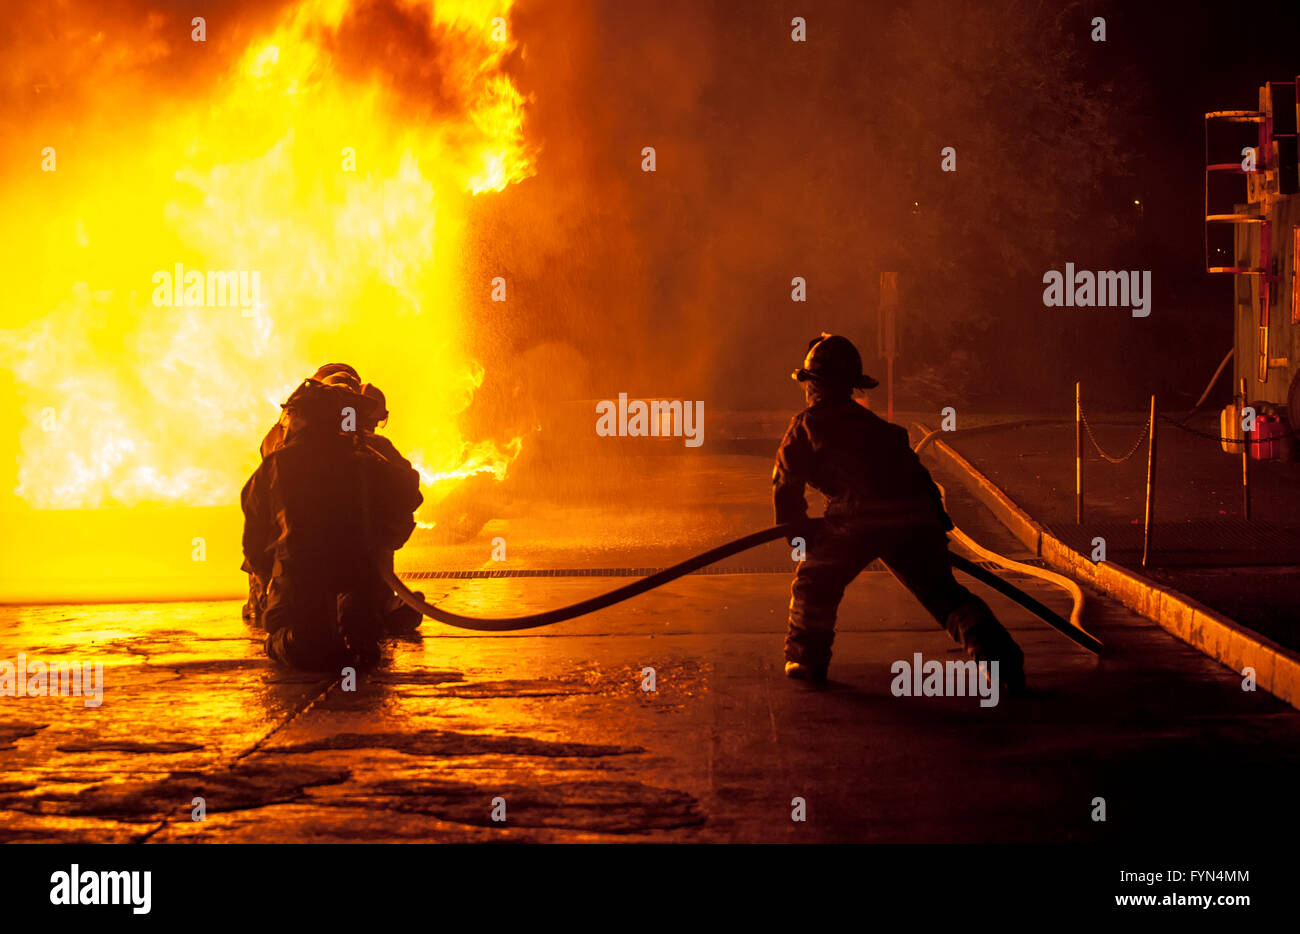 Firefighters controlling water hose - Stock Image